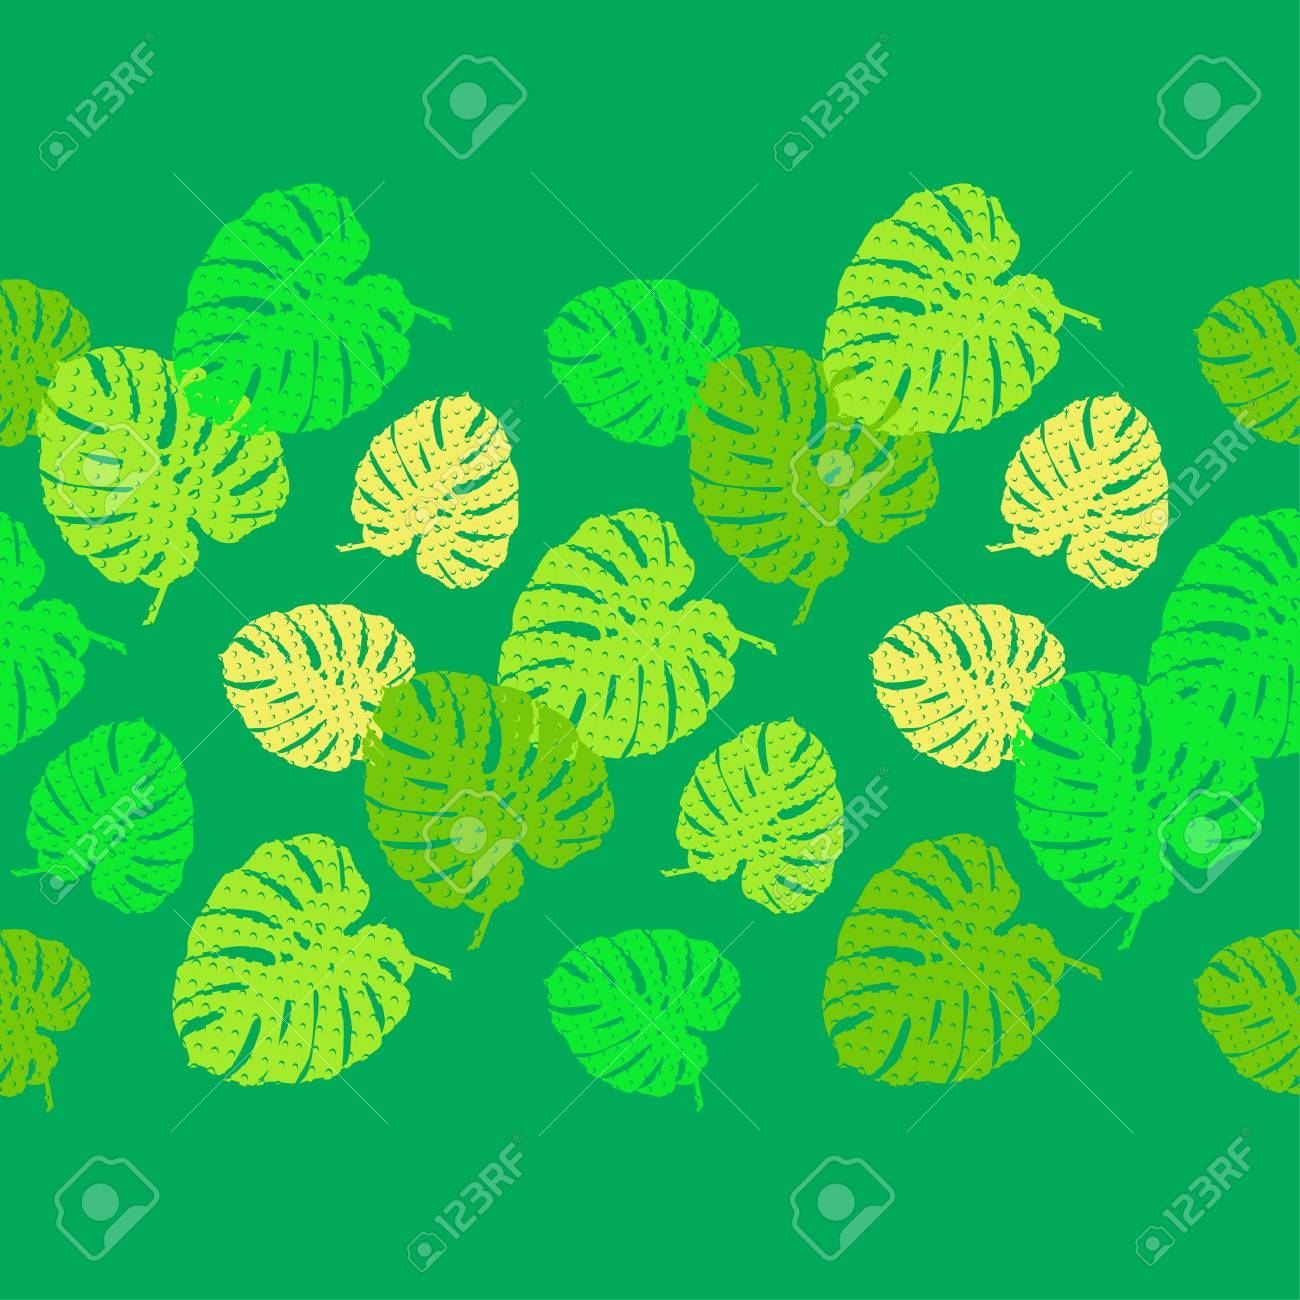 Seamless background with decorative Tropical palm leaves. Monstera. Texture with dots. Can be used for wallpaper, textile, wrapping, web page background. - 115096239